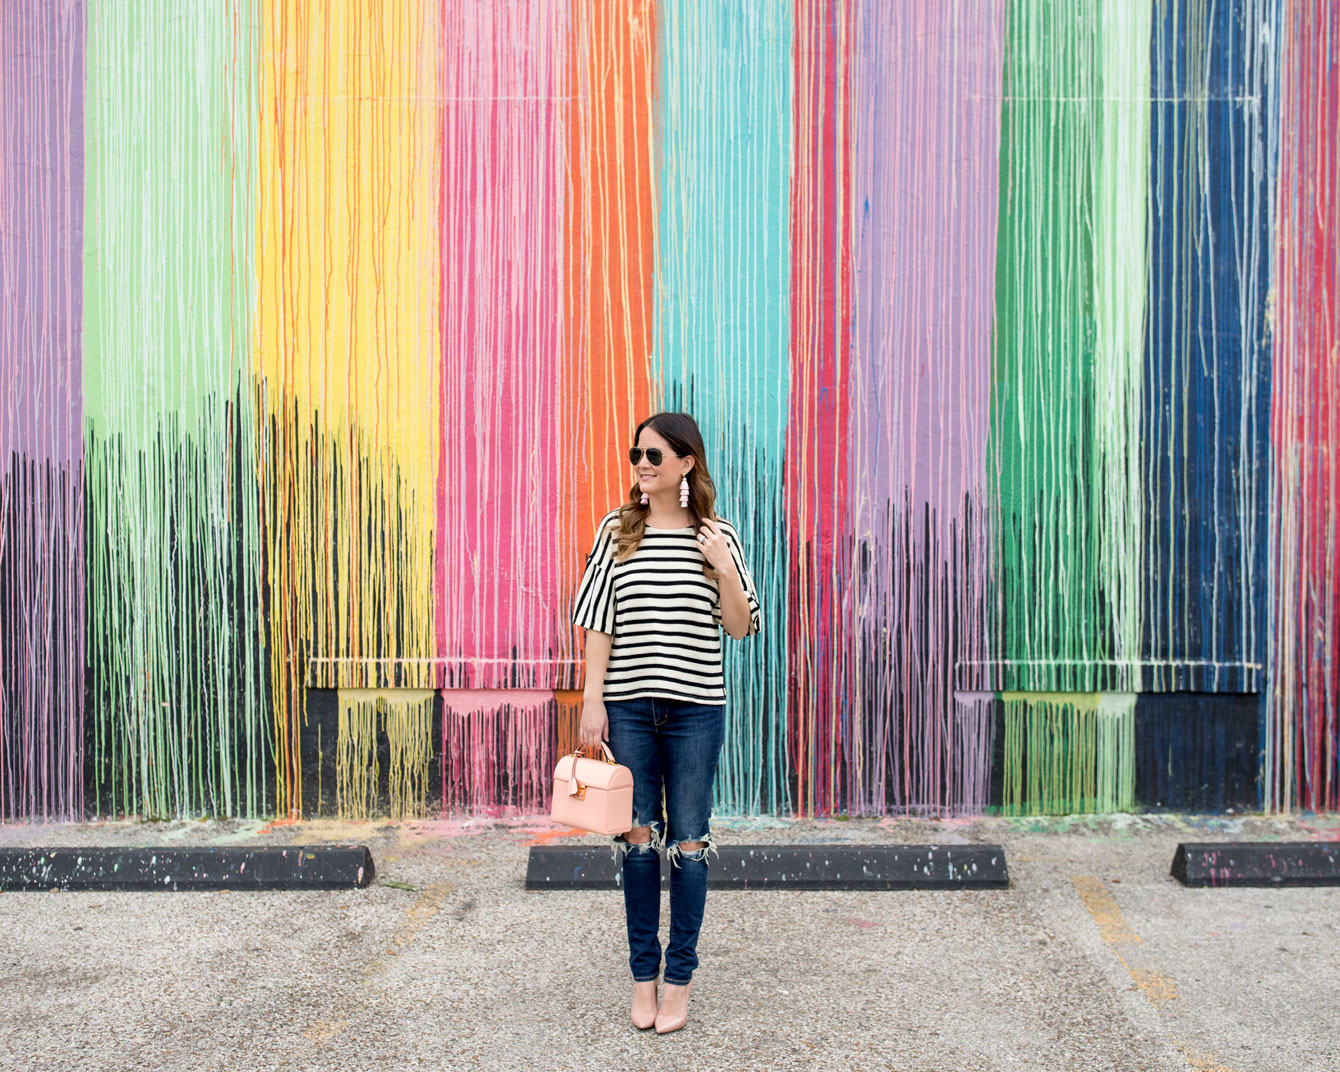 Houston Biscuit Paint Wall